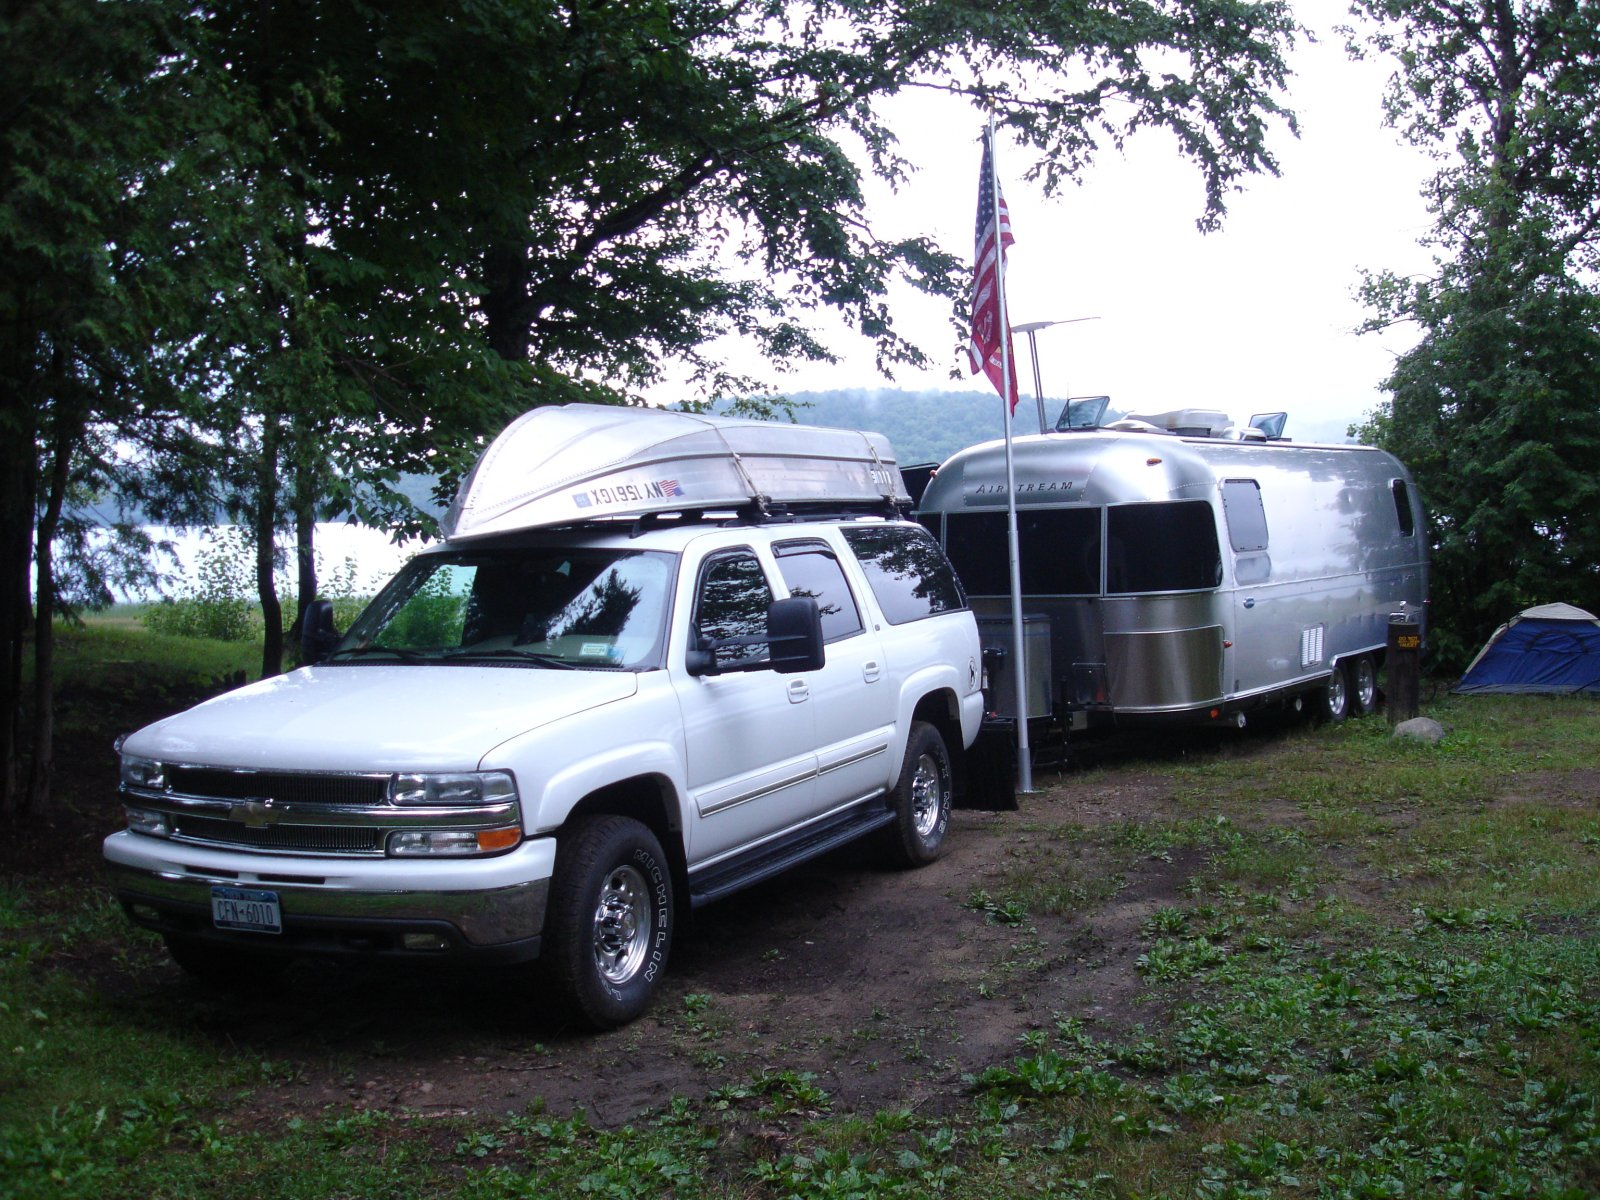 Click image for larger version  Name:PISECO LAKE CAMPING JULY 2008 031.jpg Views:102 Size:473.4 KB ID:69037